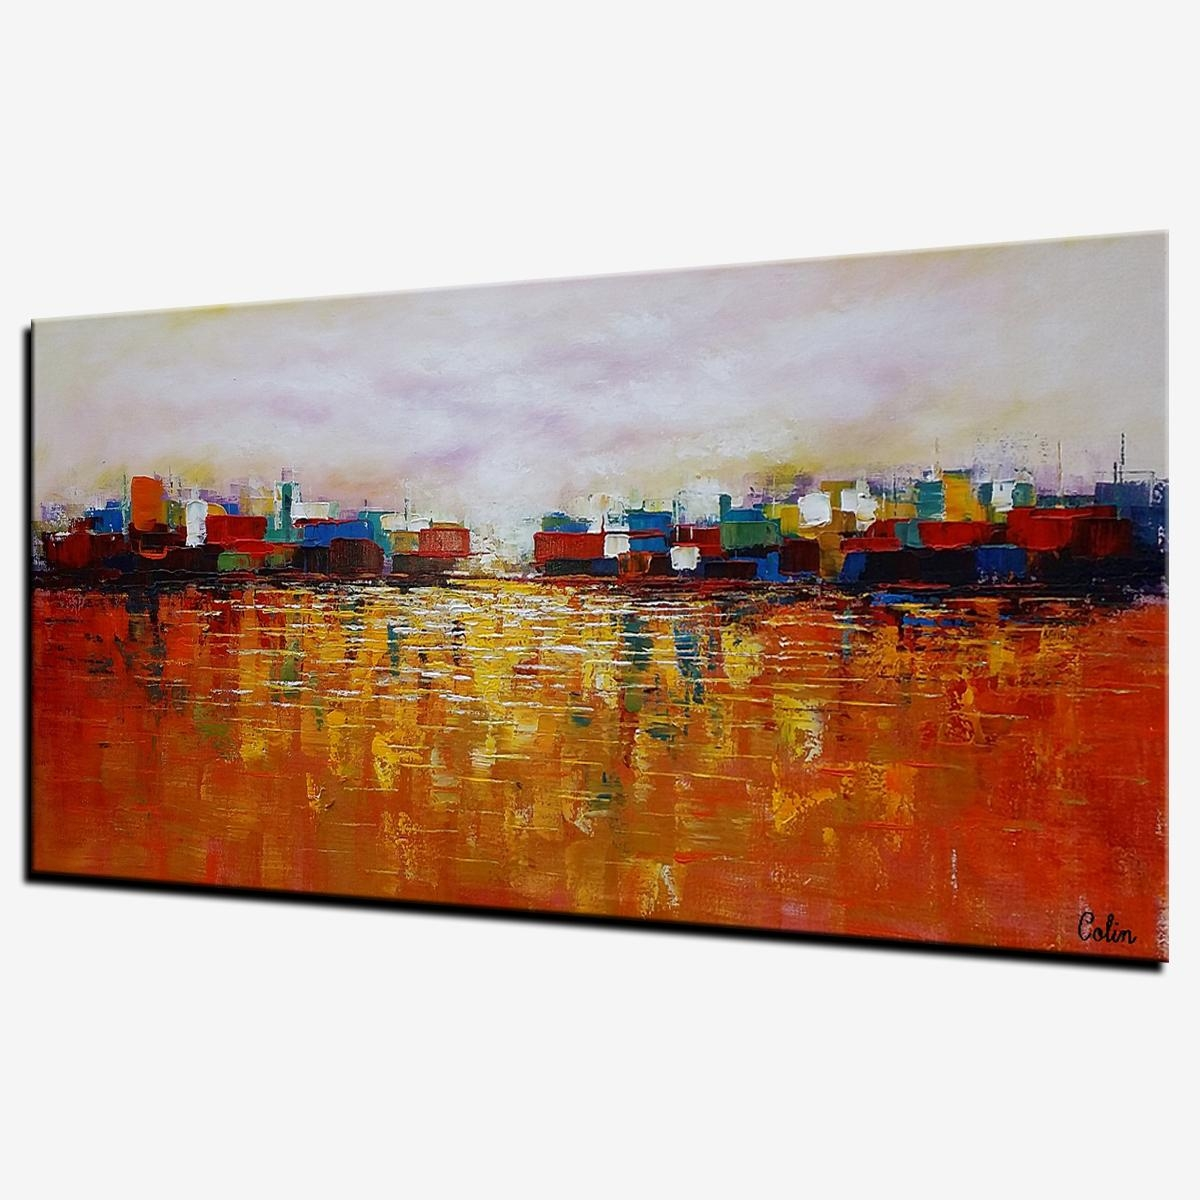 Cityscape Art, Abstract Landscape Painting, Canvas Wall Art With Regard To Cityscape Canvas Wall Art (View 14 of 20)